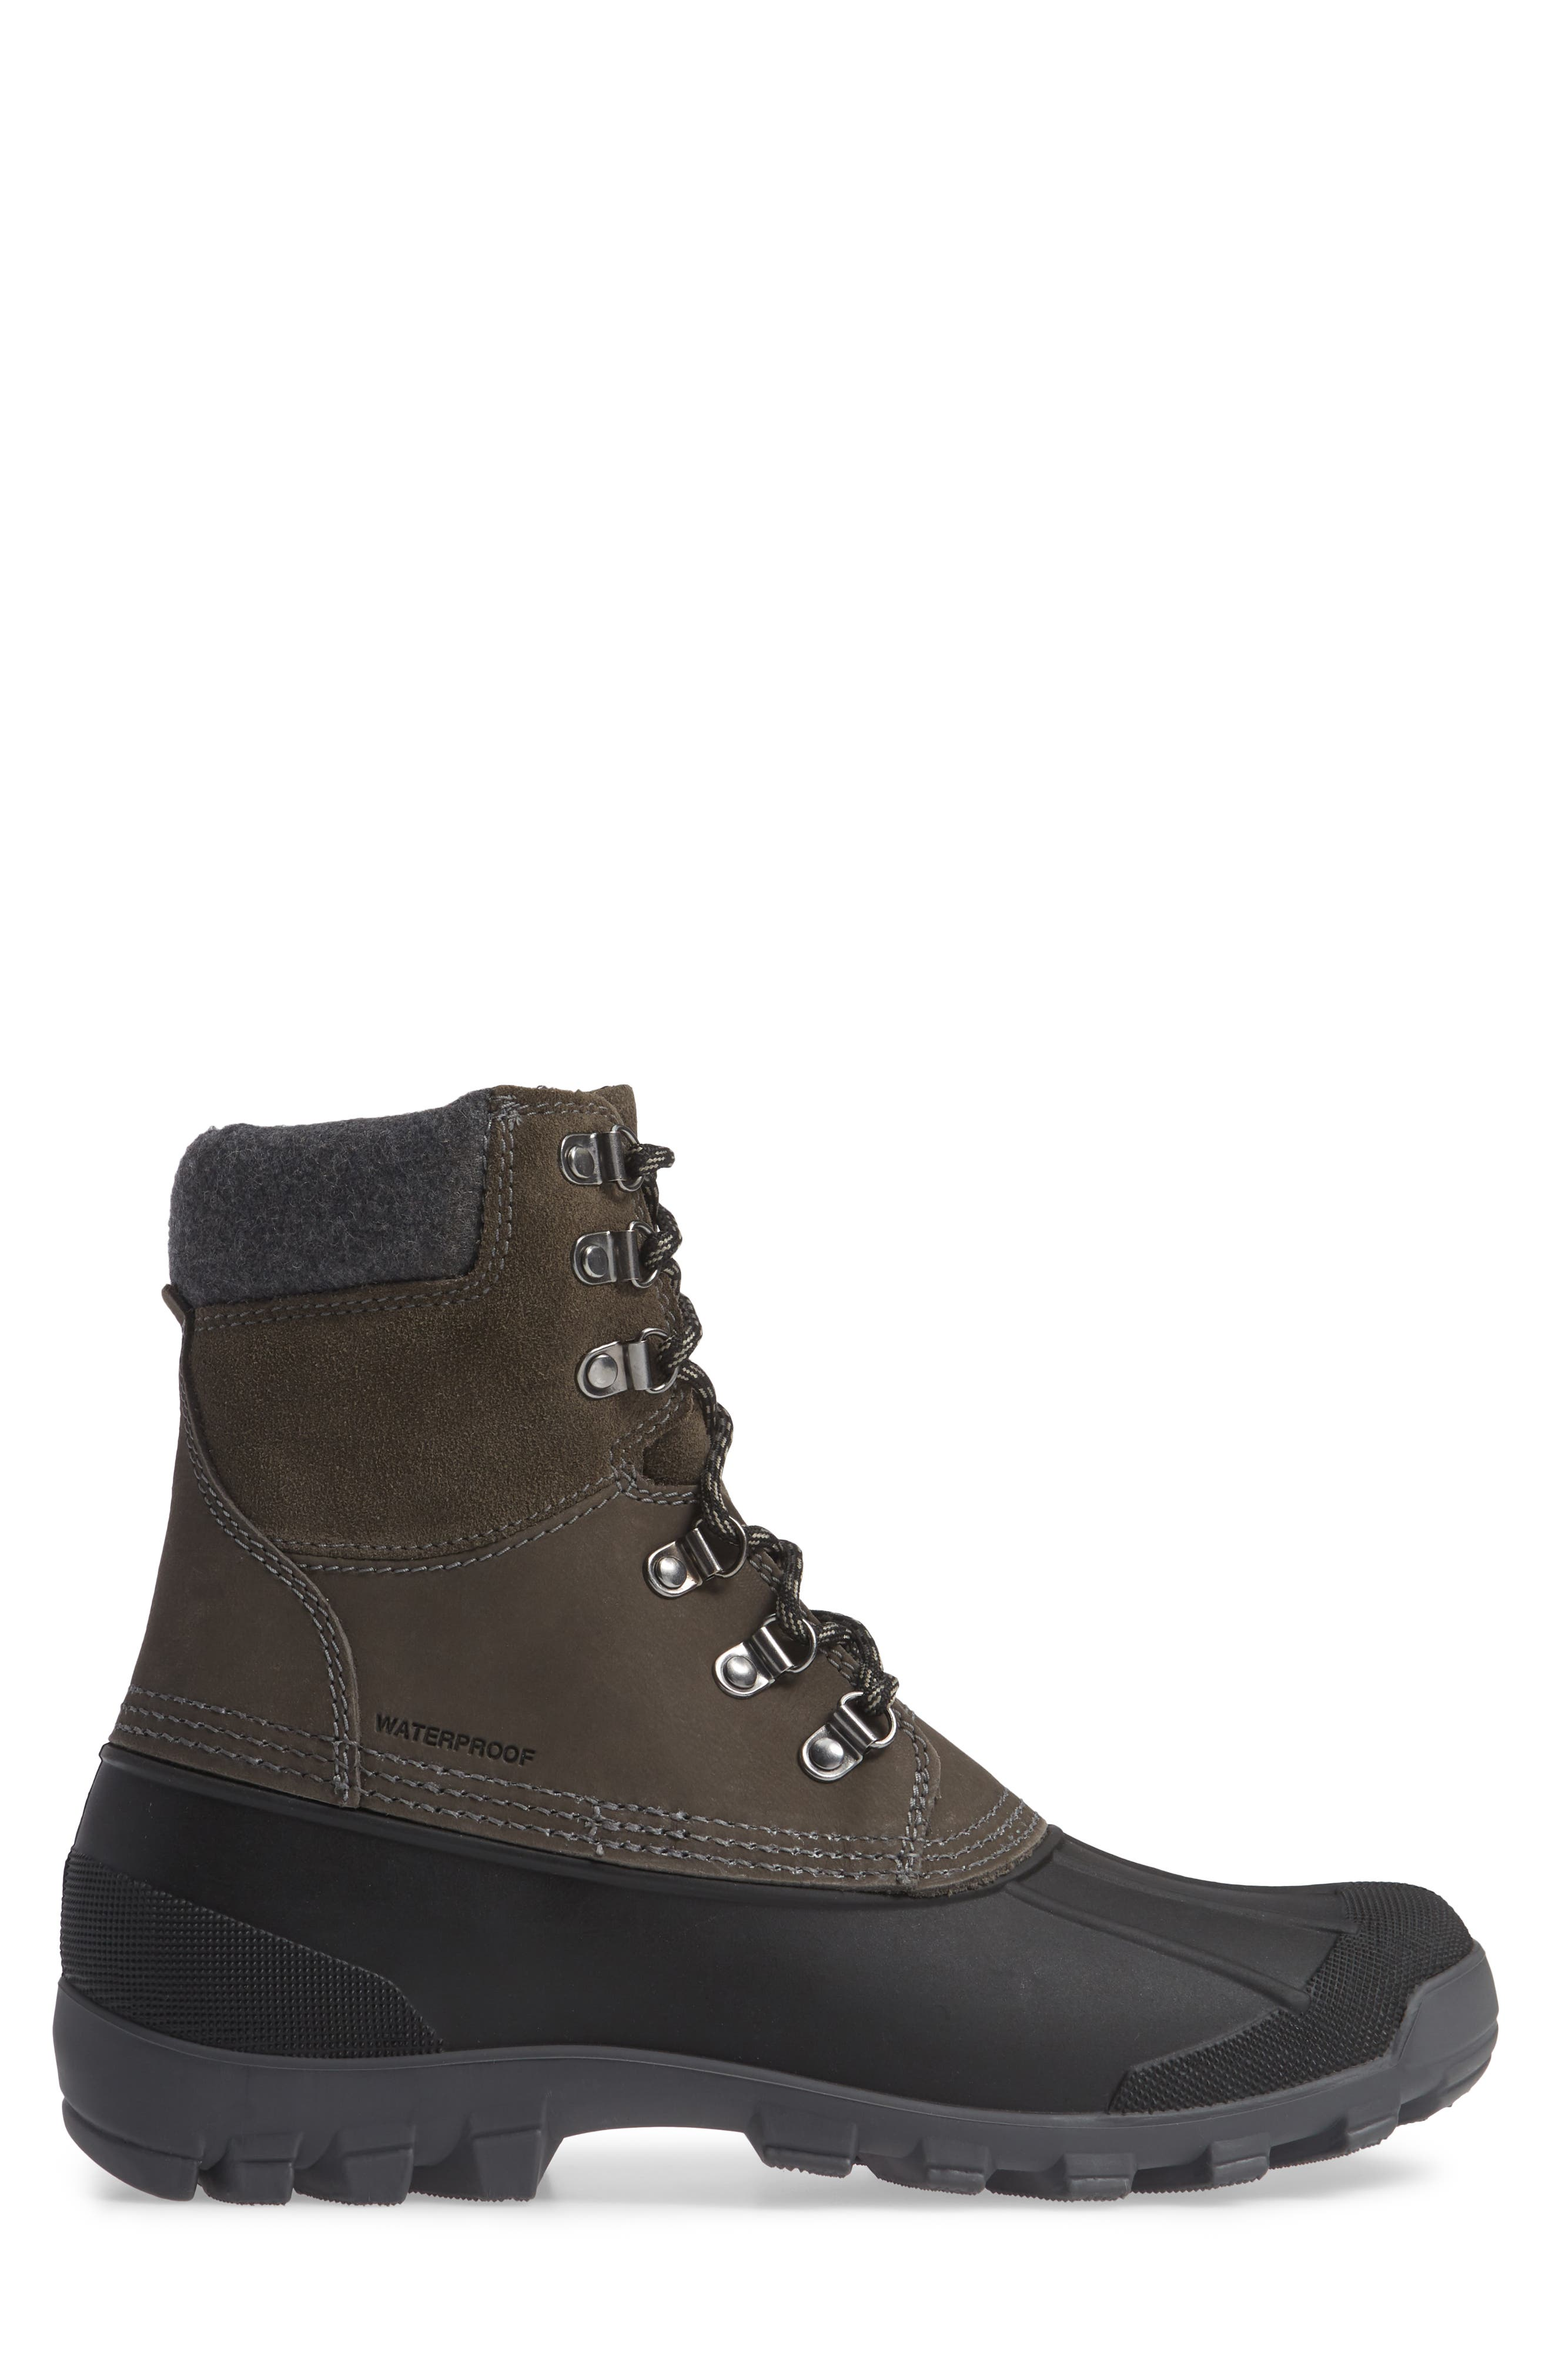 Hudson 5 Boot,                             Alternate thumbnail 3, color,                             CHARCOAL LEATHER